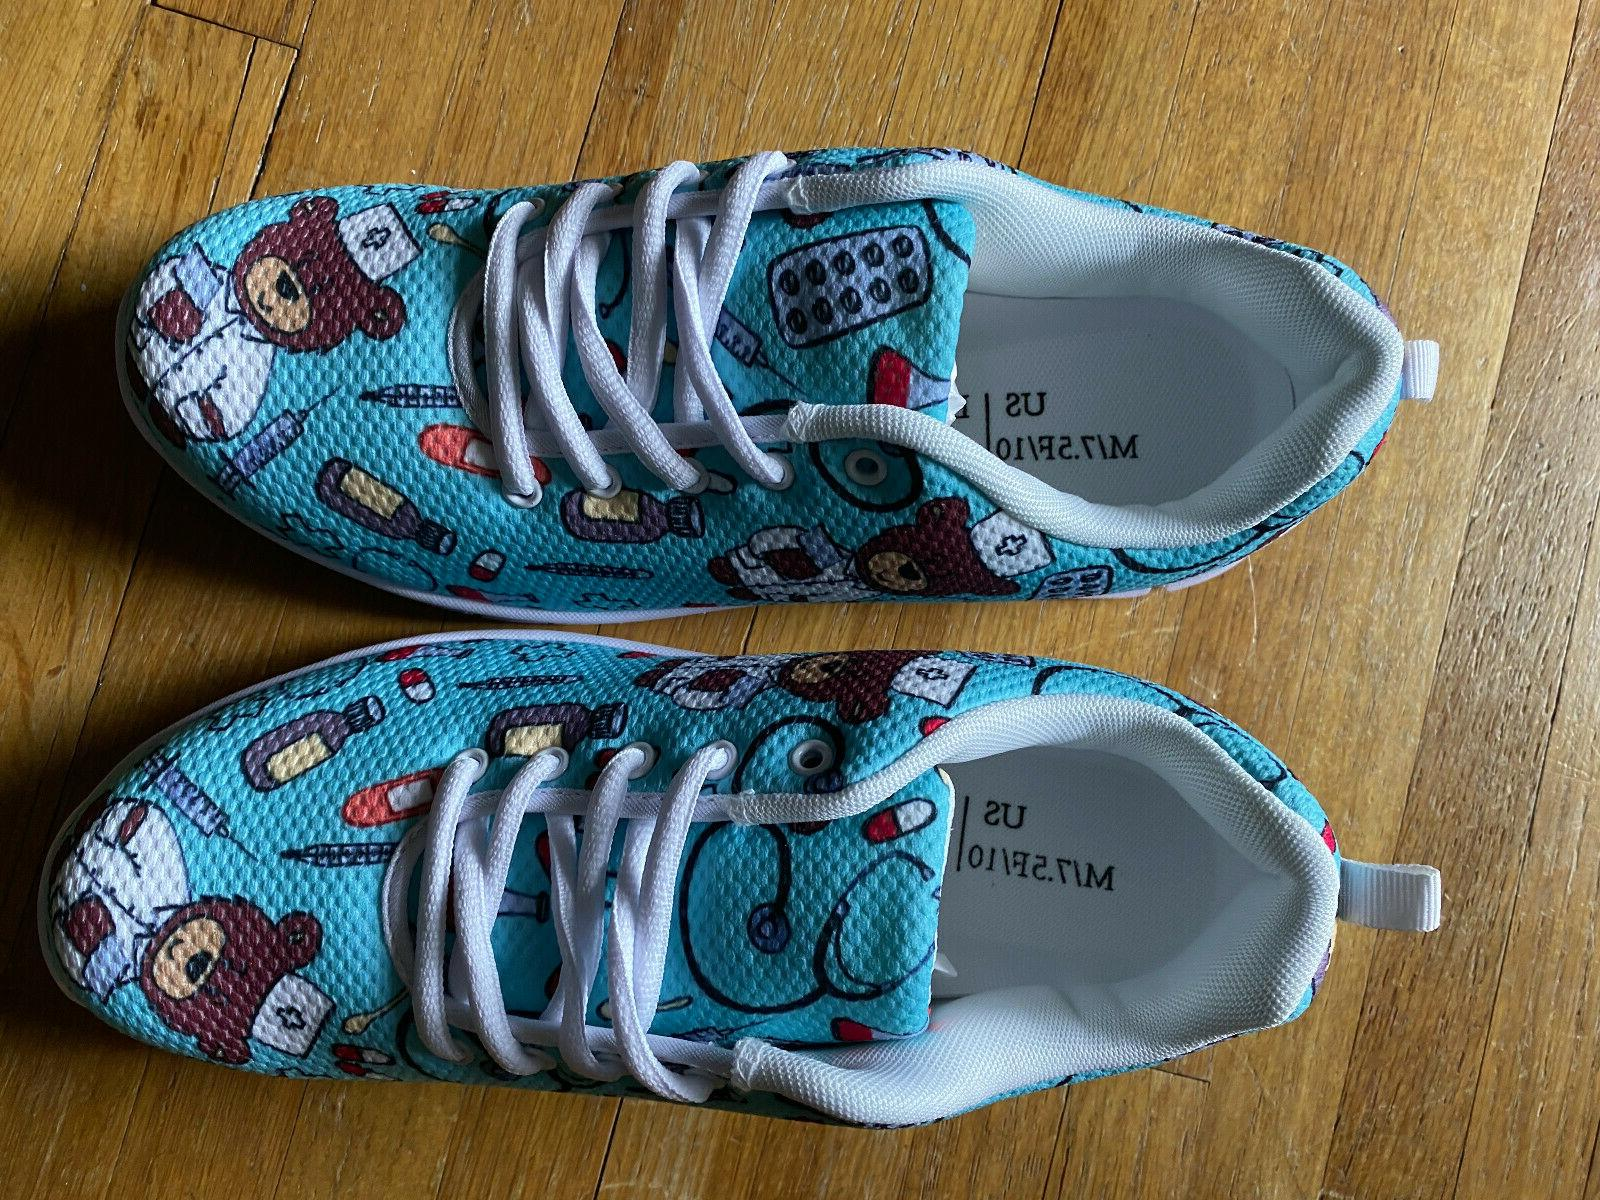 teal turquoise womens nursing tennis shoes size